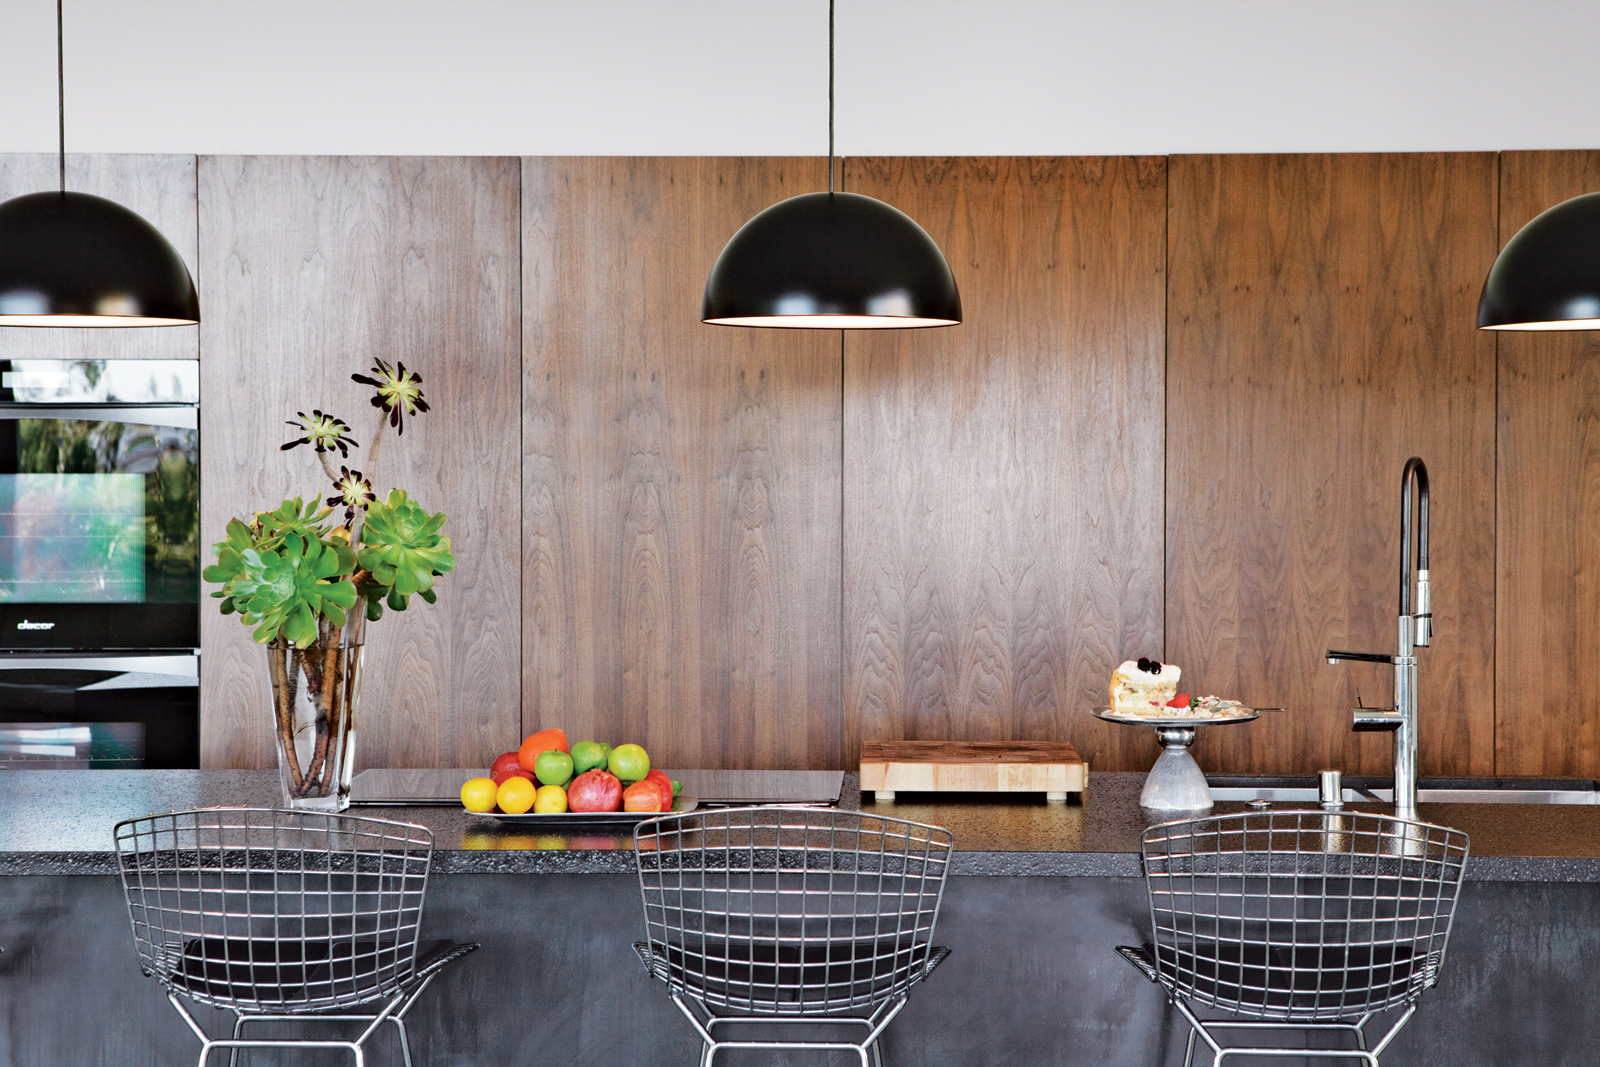 Black pendant lambs hang over countertop and metal tall chairs